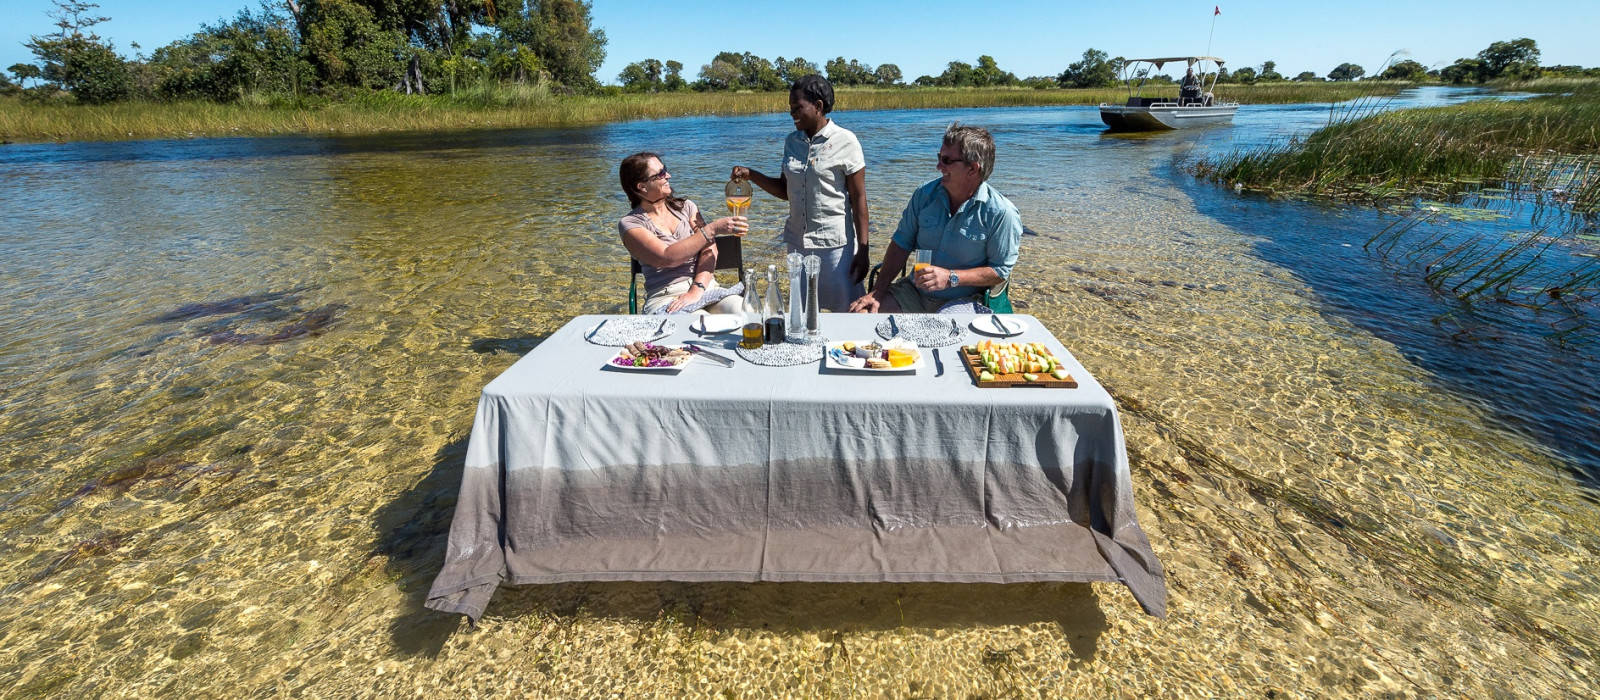 Enchanting Travels Botswana Tours Okavango Hotels Pelo Camp (2)